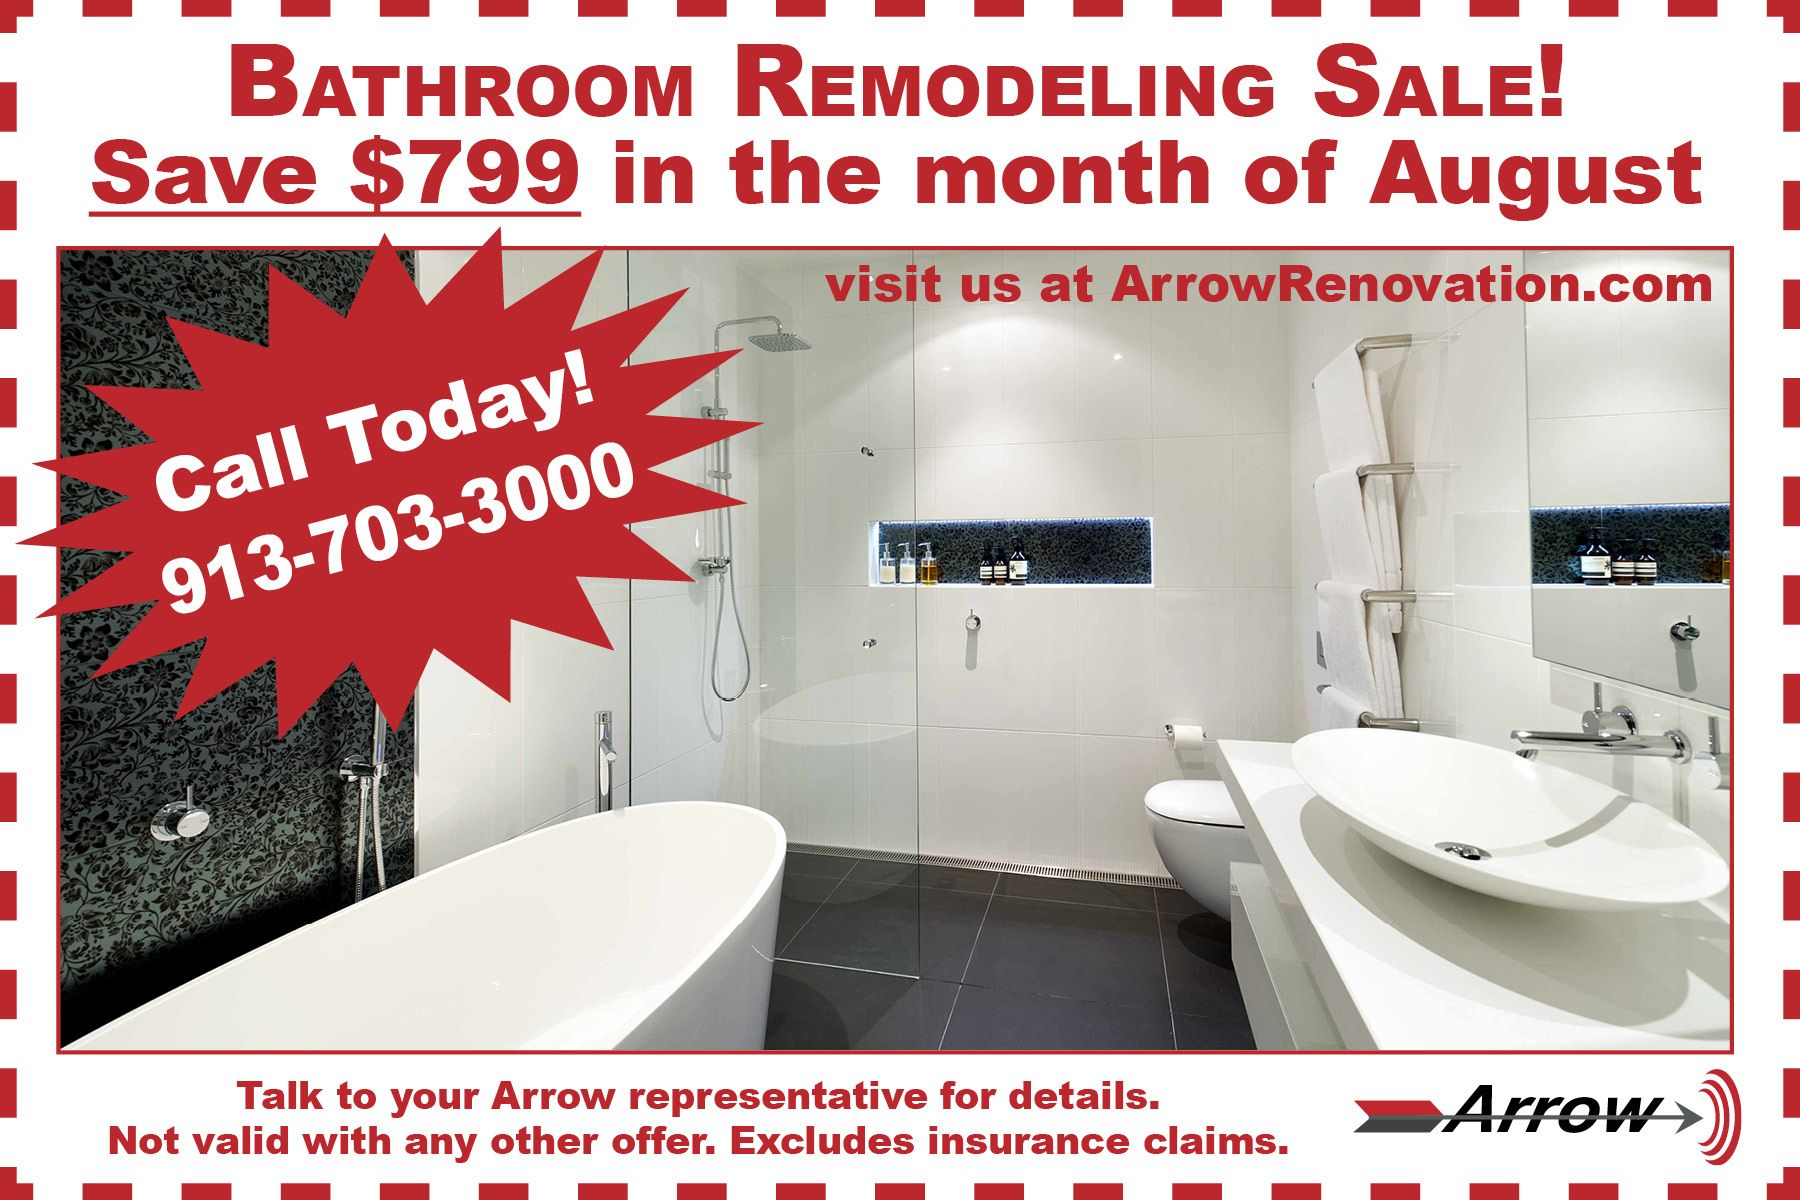 Bathroom Remodeling Sale Save 799 In The Month Of August Call Today 913 703 3000 Show Your Arrow Representative Print Coupons Bathrooms Remodel Remodel [ jpg ]